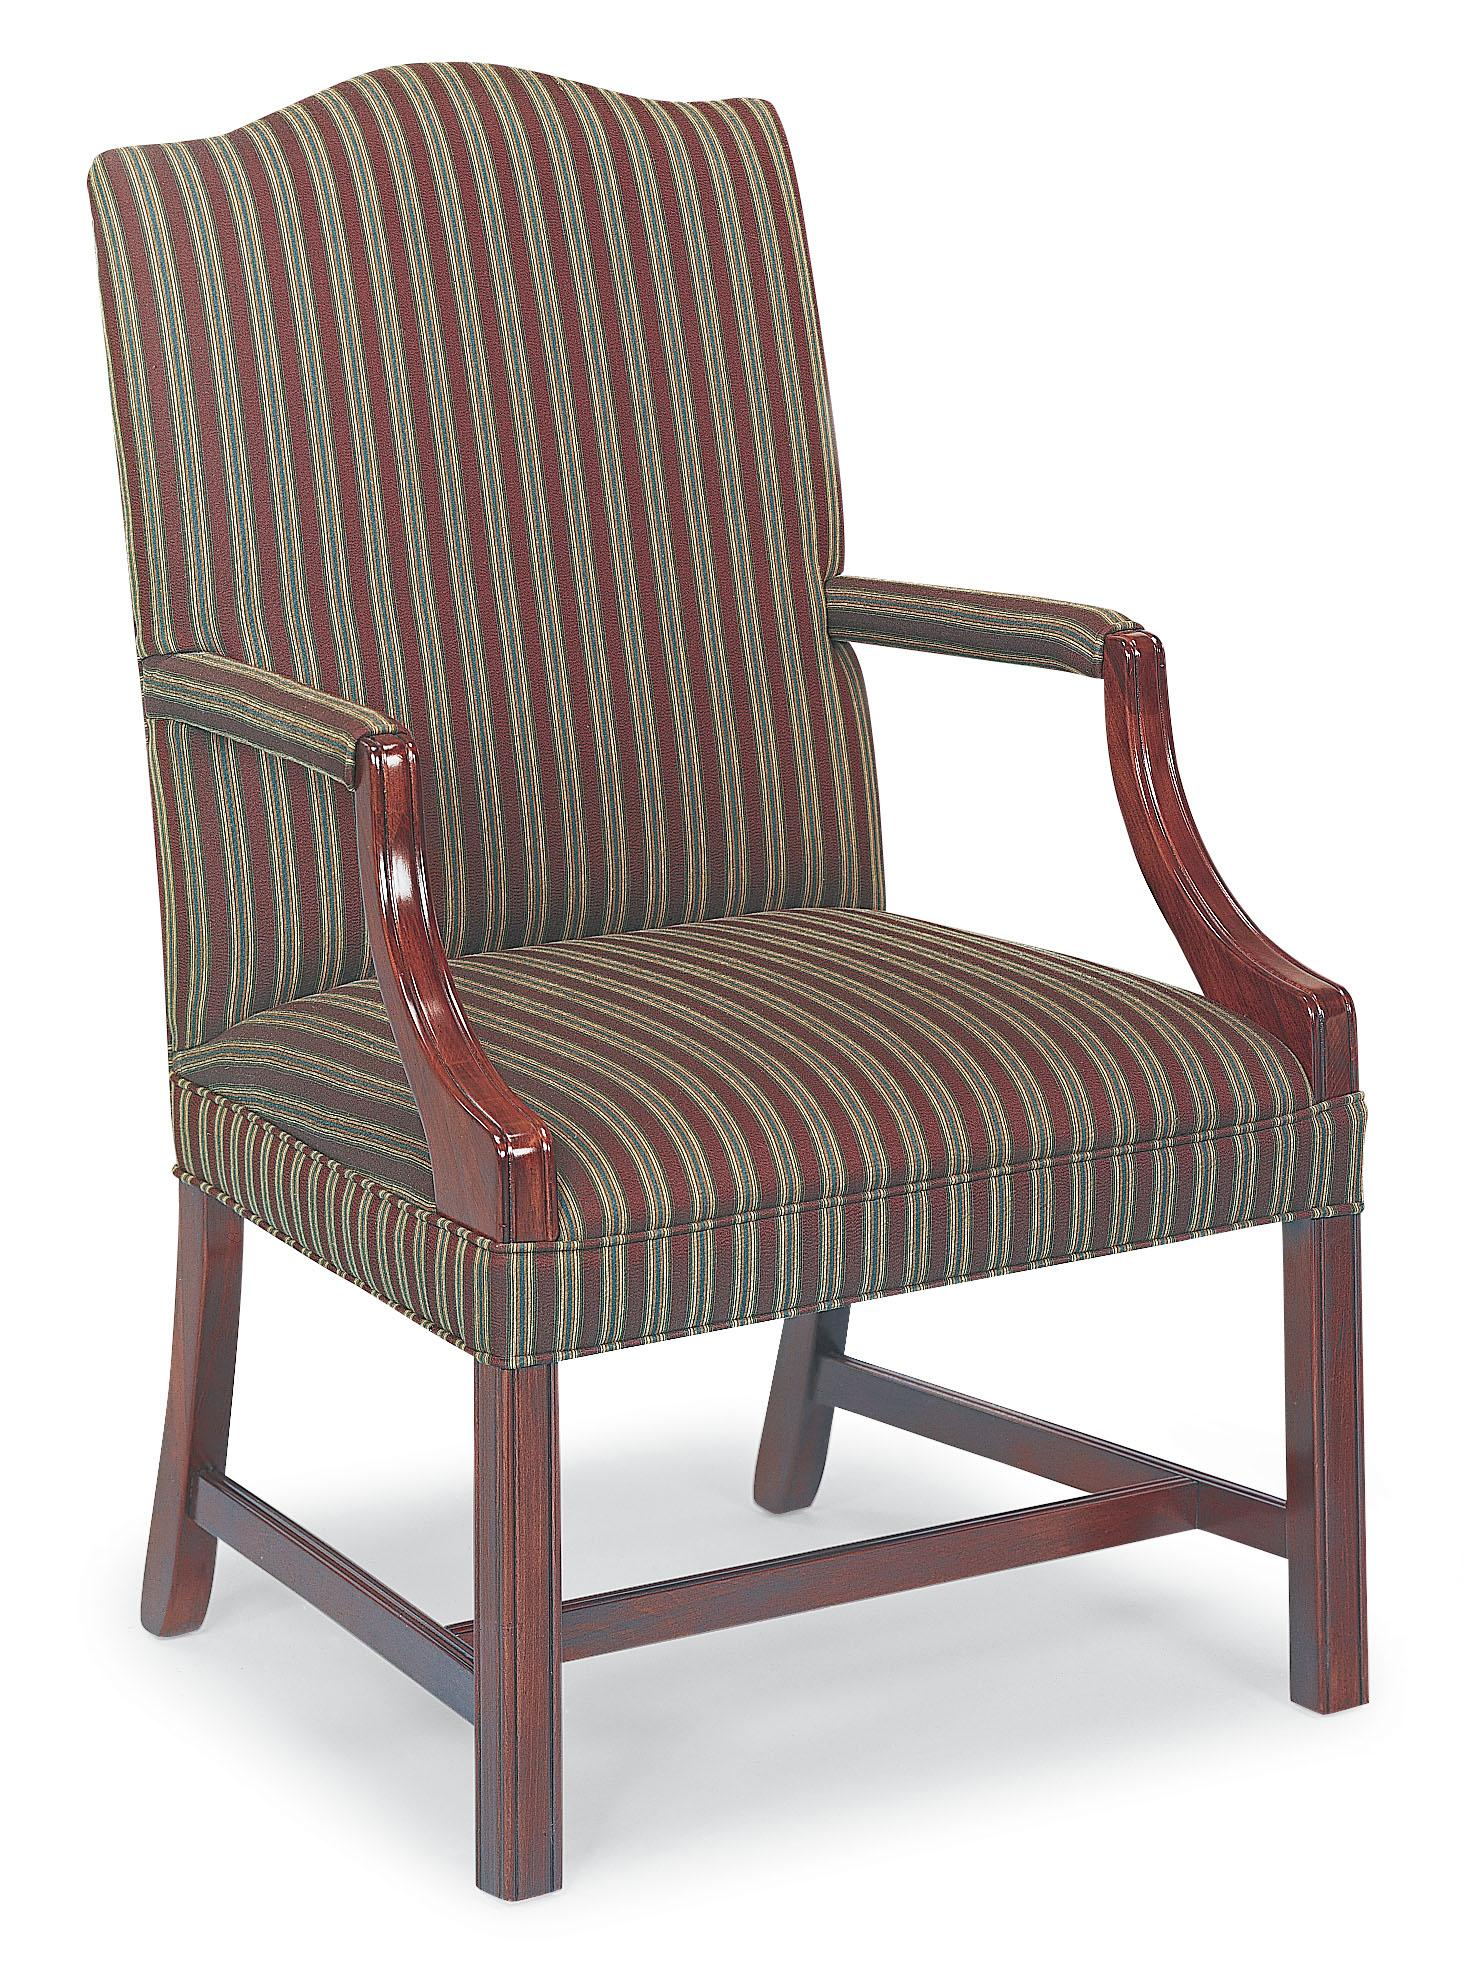 Fairfield Chairs Exposed Wood Chair - Item Number: 1092-04